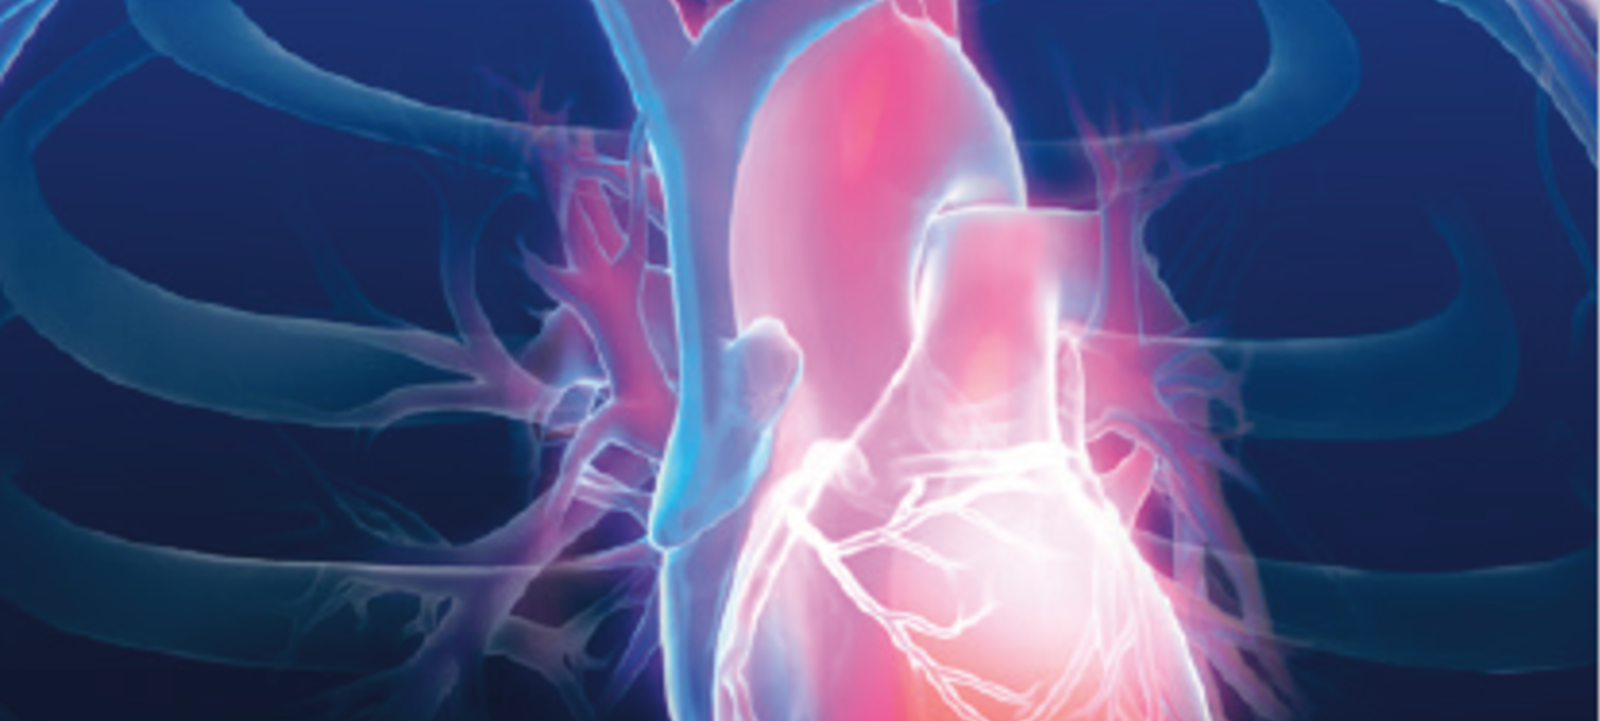 Cardio-Oncology: Cardiac Tumors